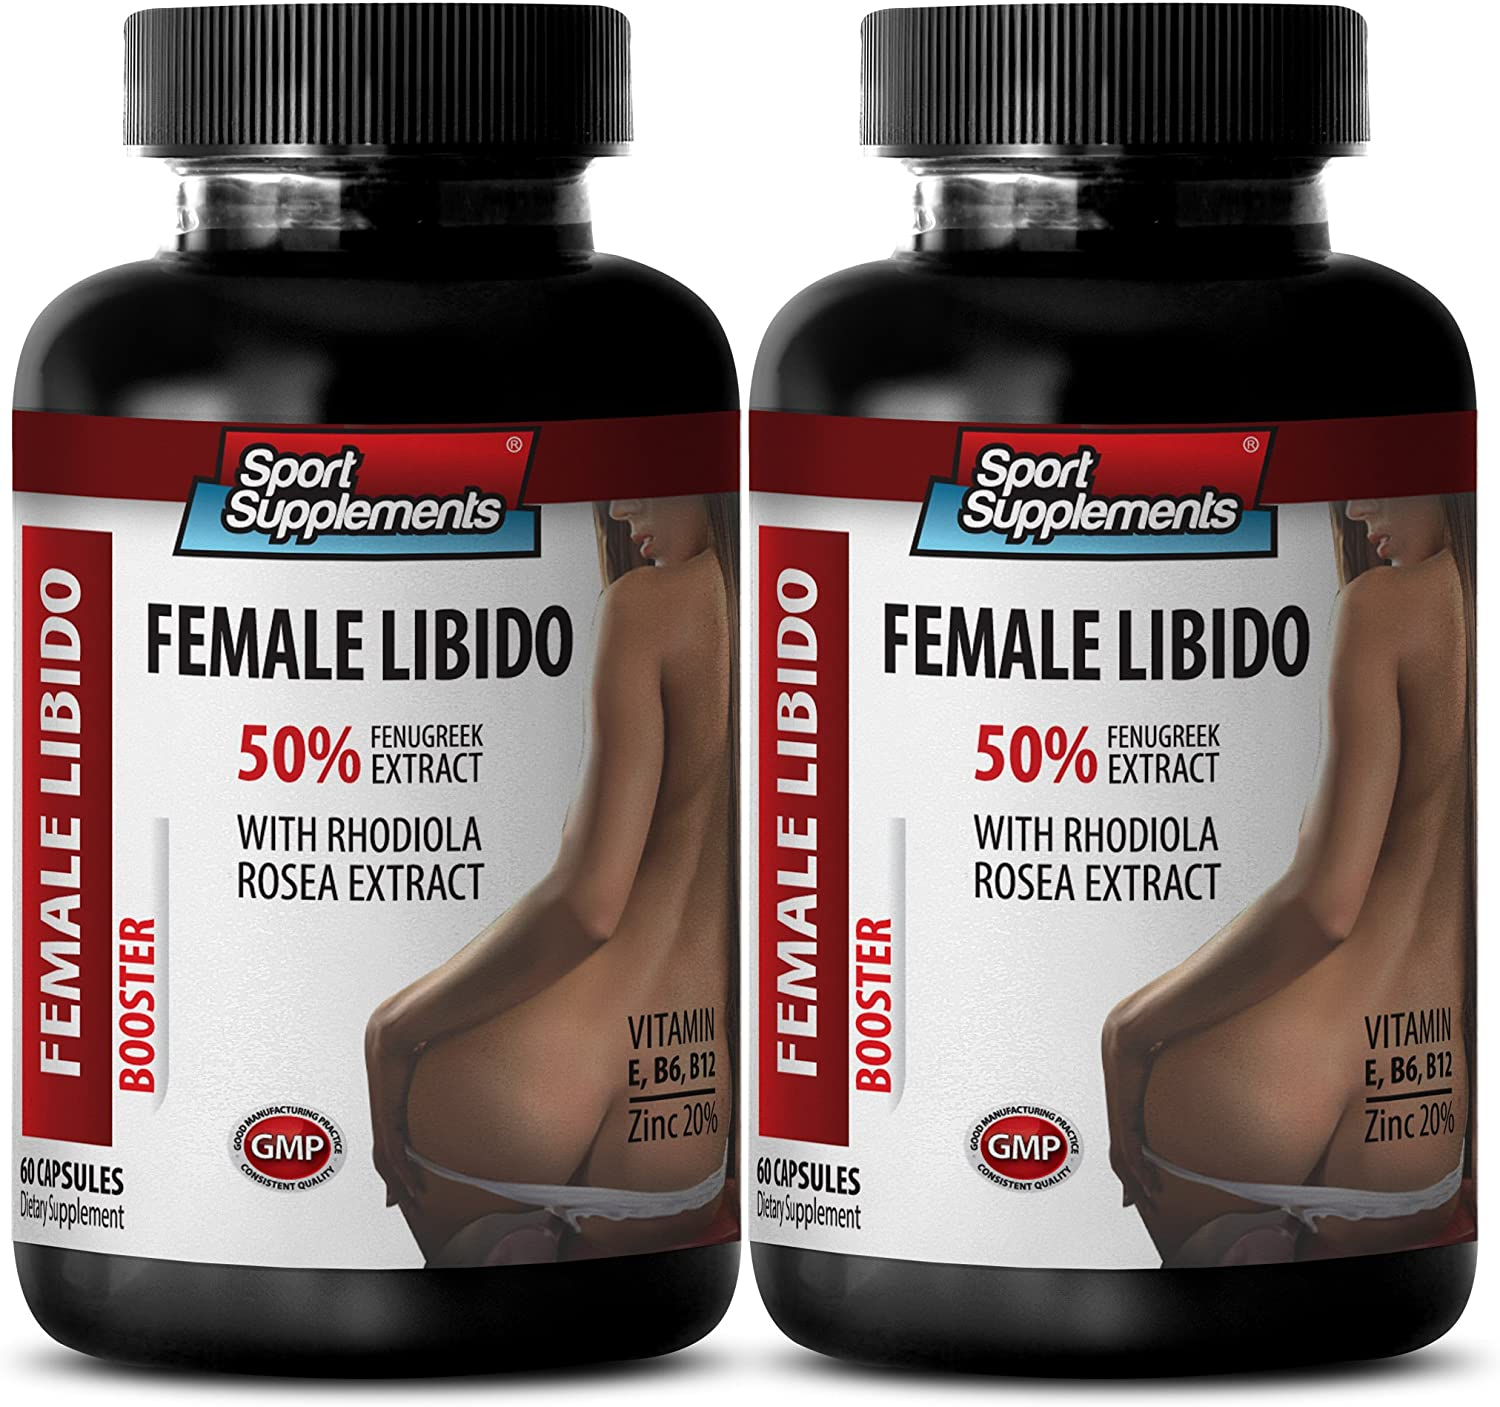 libido Enhancement for Women - Dietary Female Booster LIBIDO Luxury goods Large-scale sale S